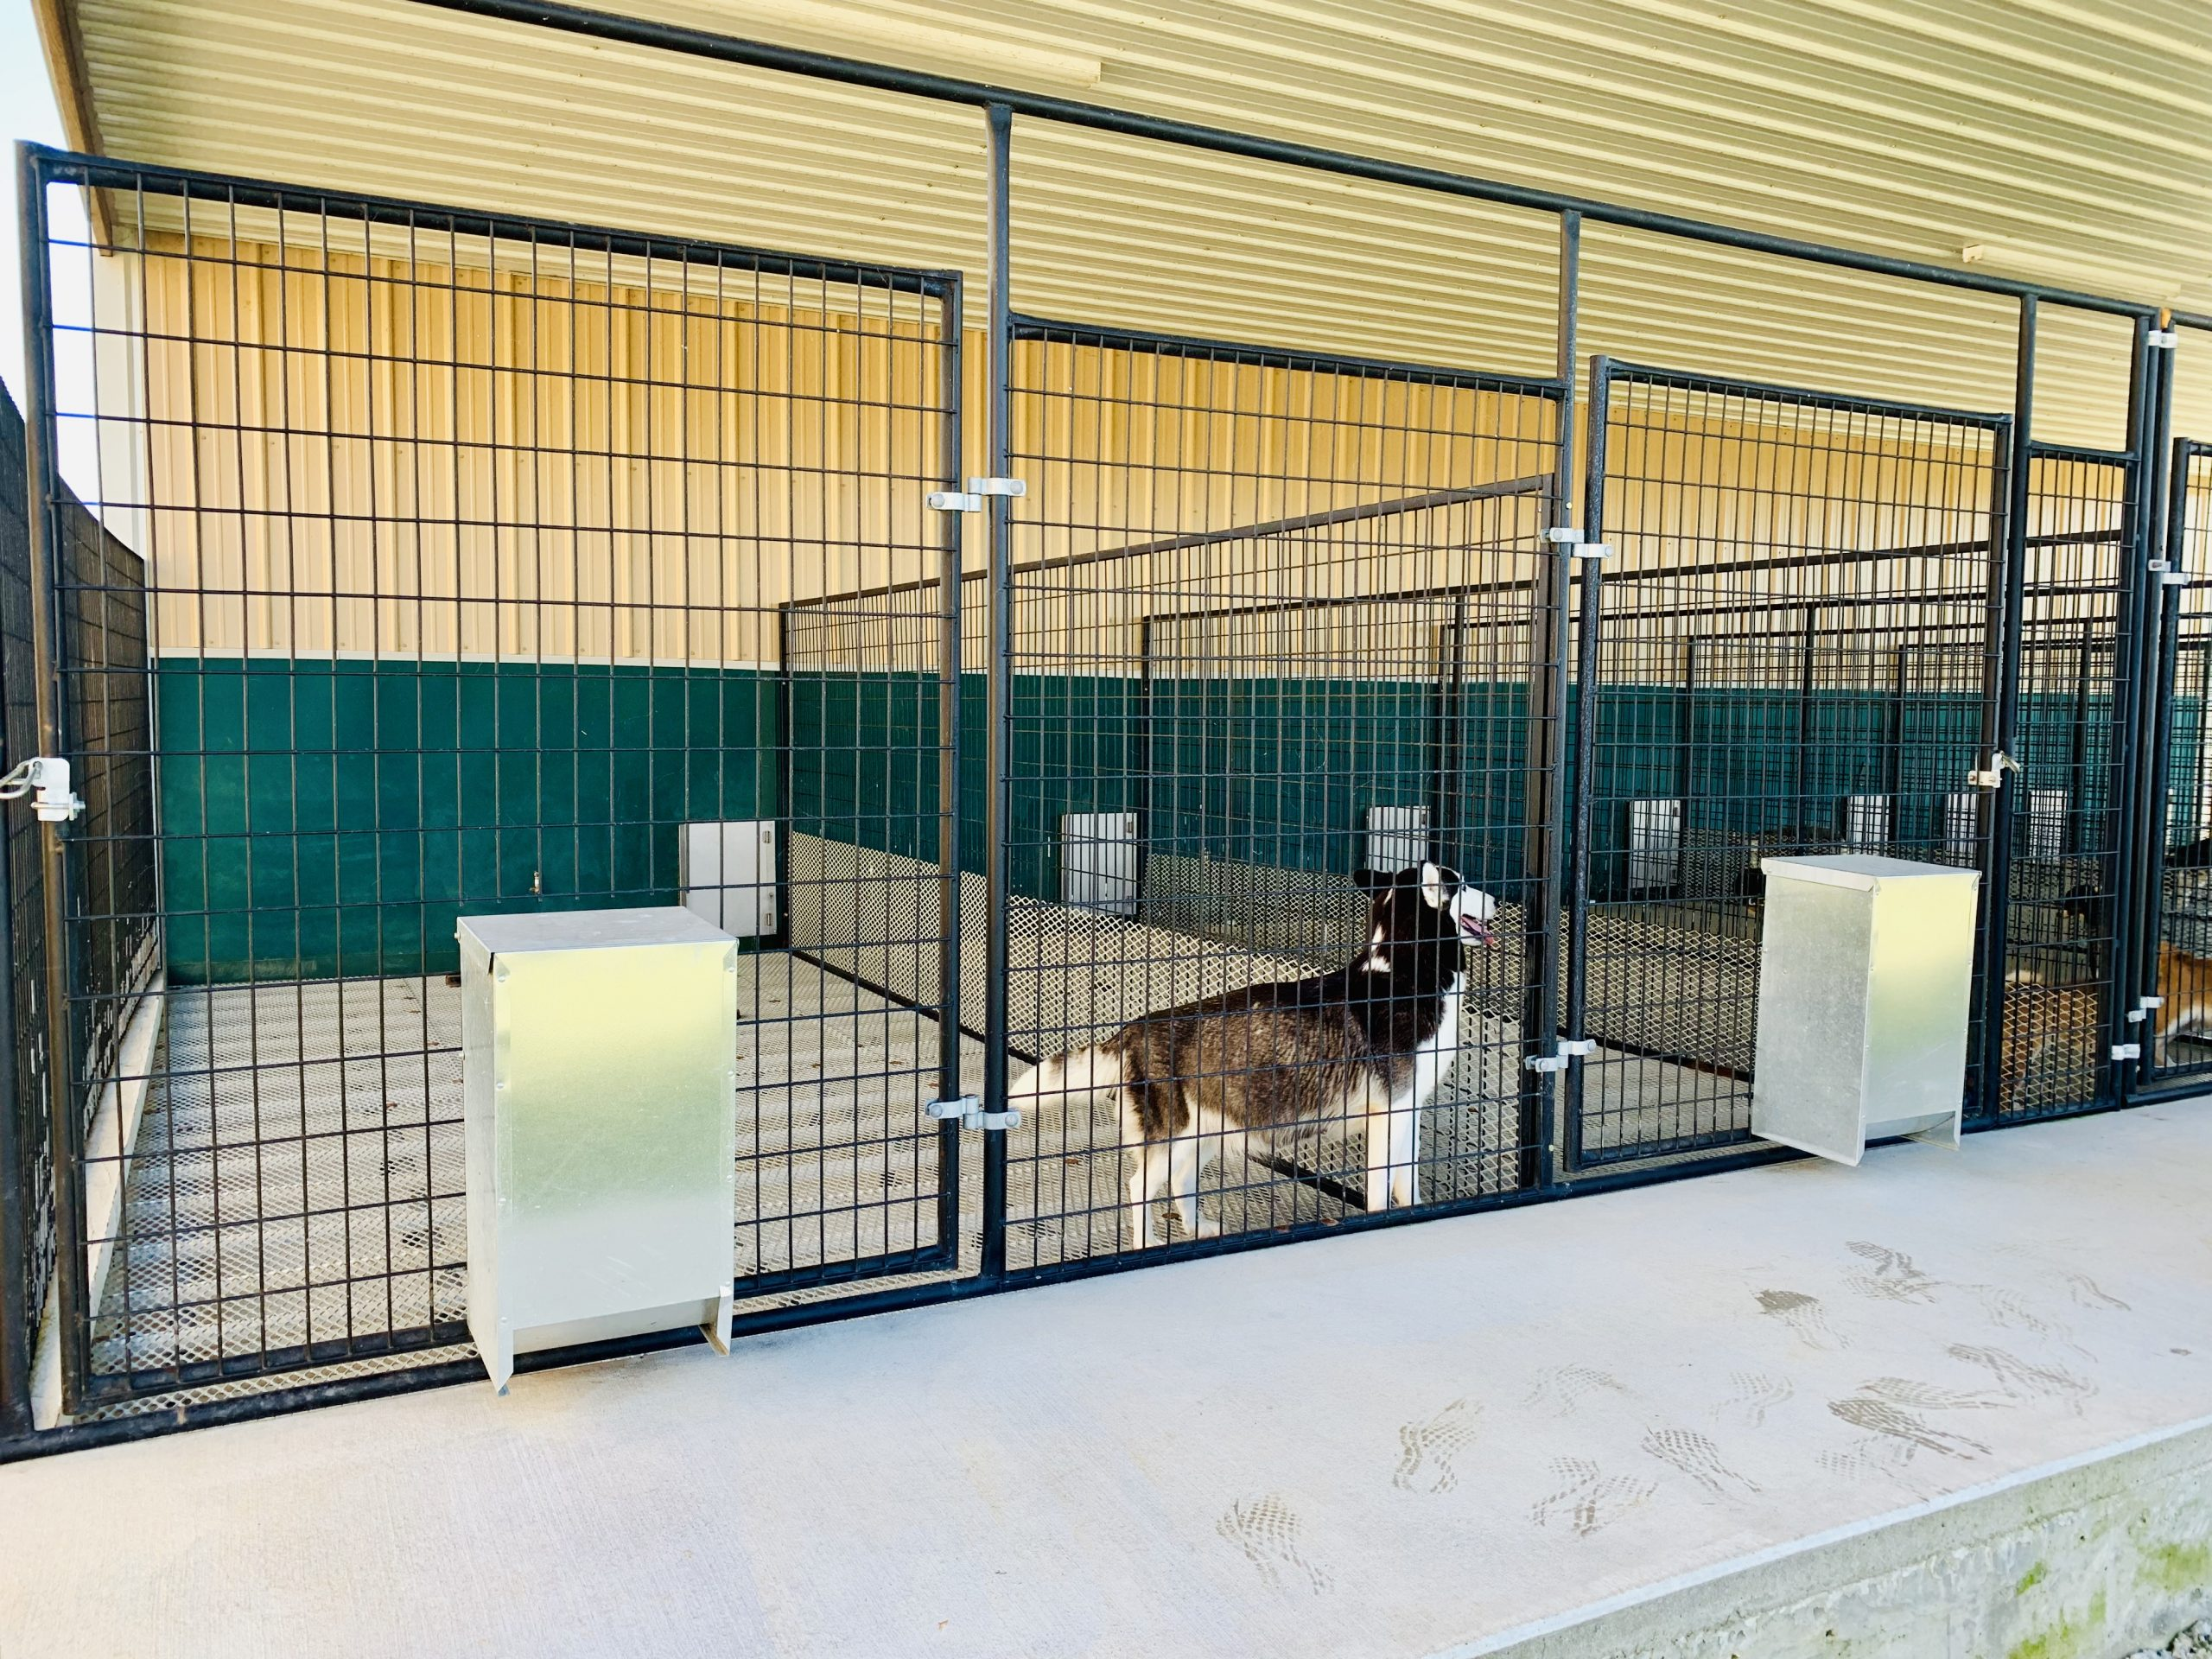 A view of Tim and Lisa's kennel